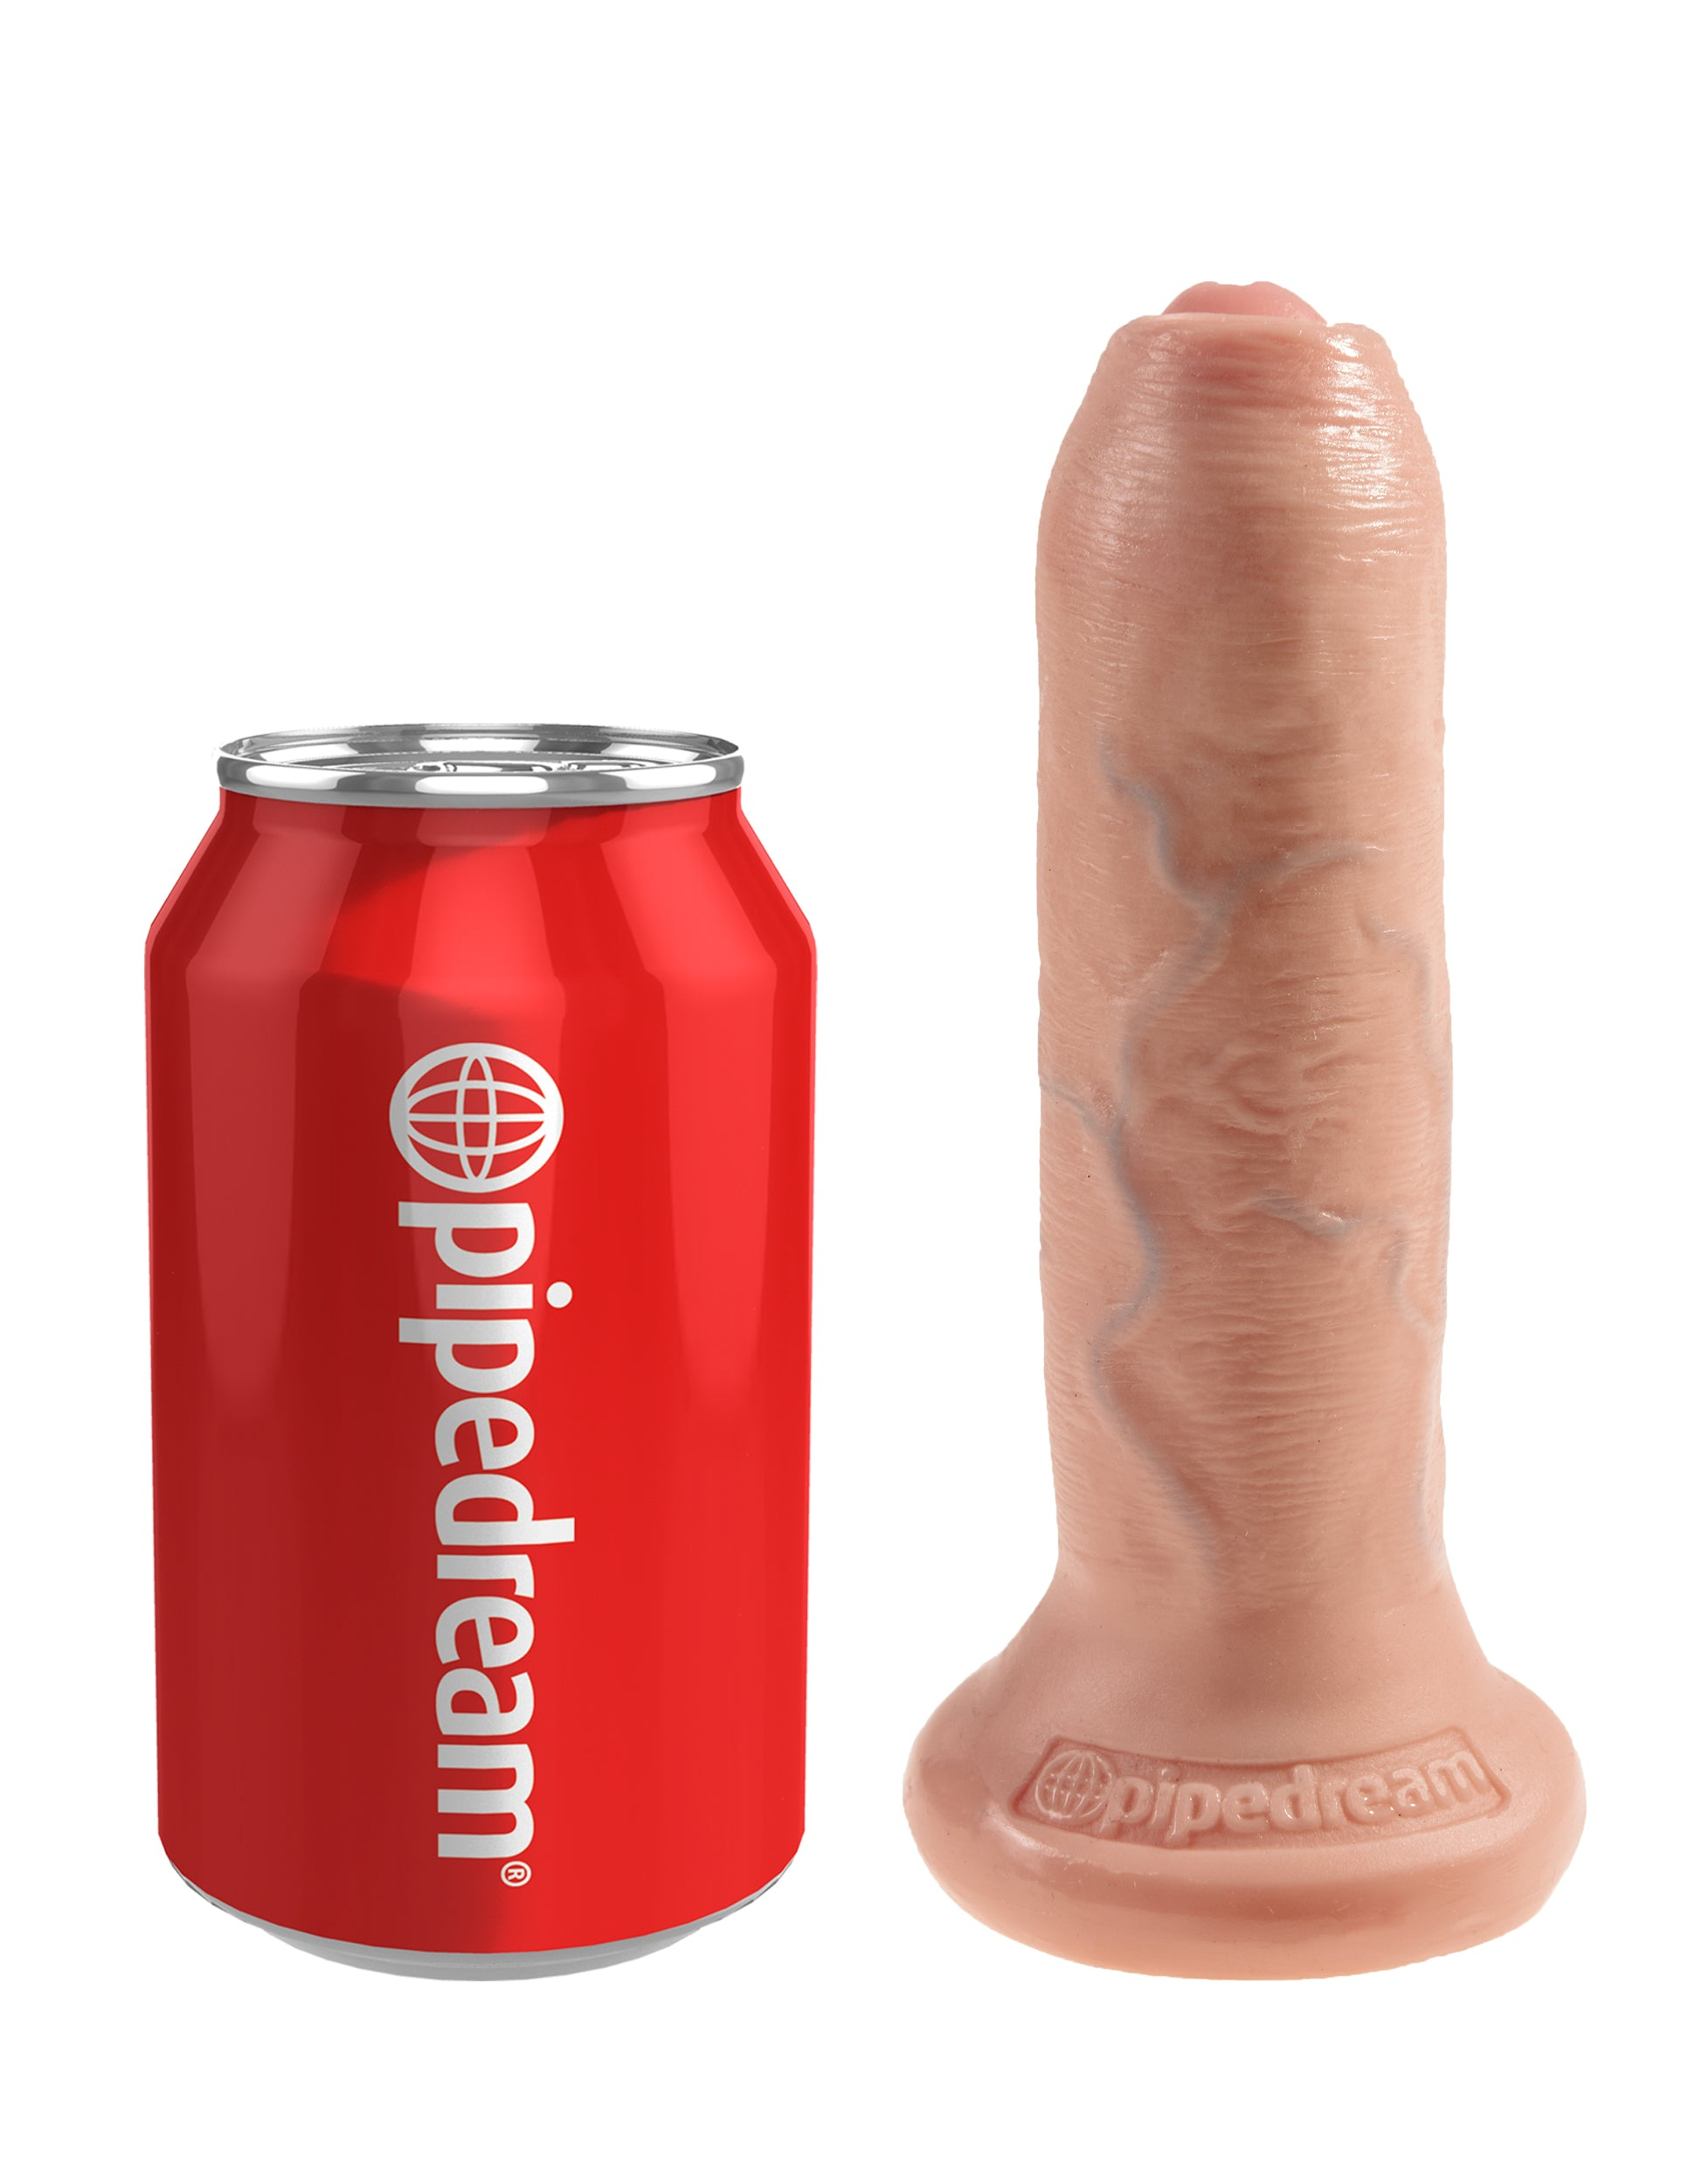 "King Cock Uncut 6"" Dildo with Moving Foreskin by Pipedream - Vanilla size comparison"